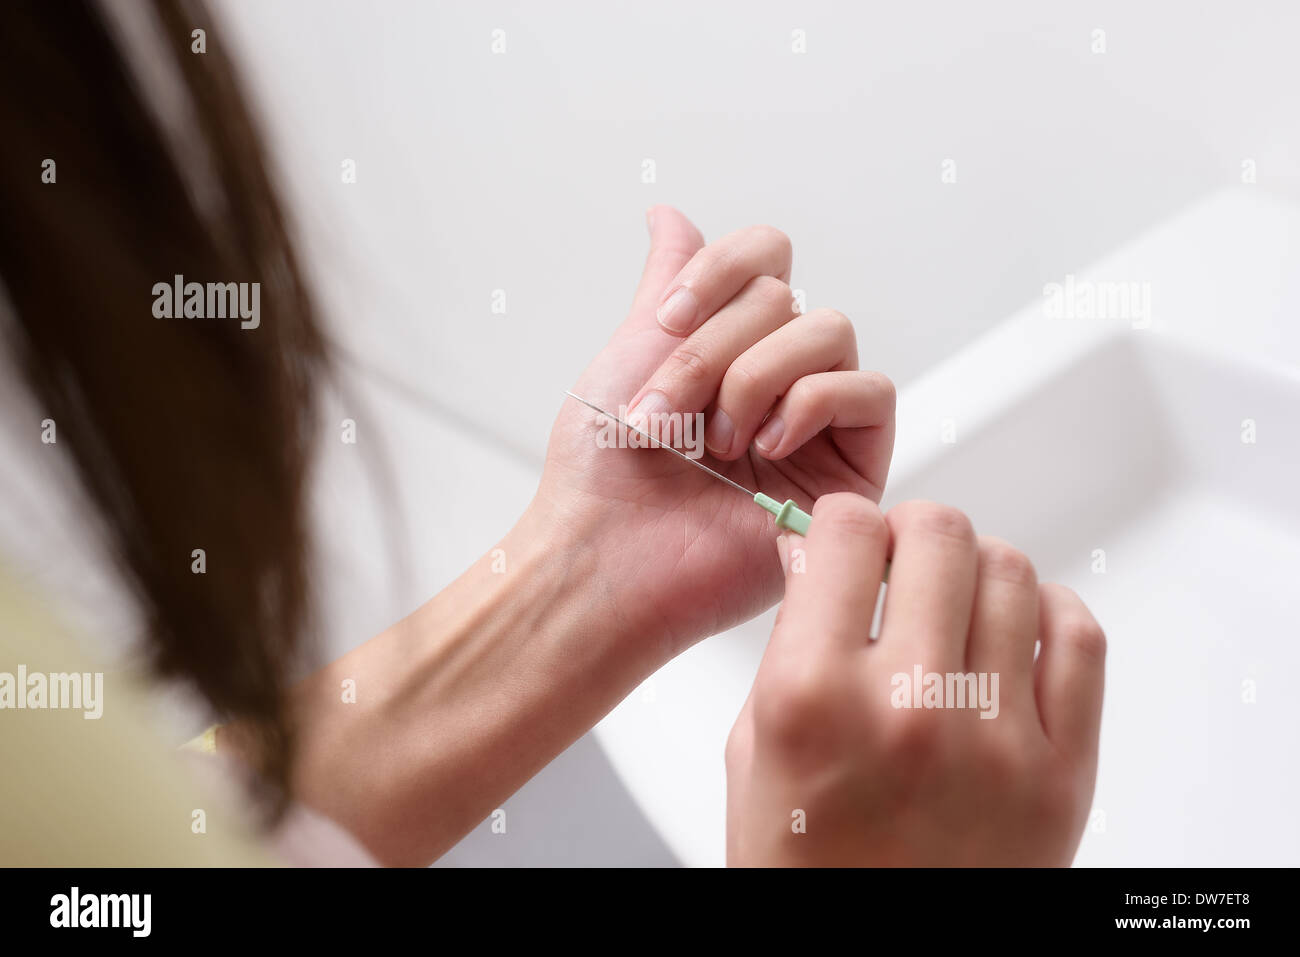 woman using soap to wash her hands with water in a white handbasin - Stock Image